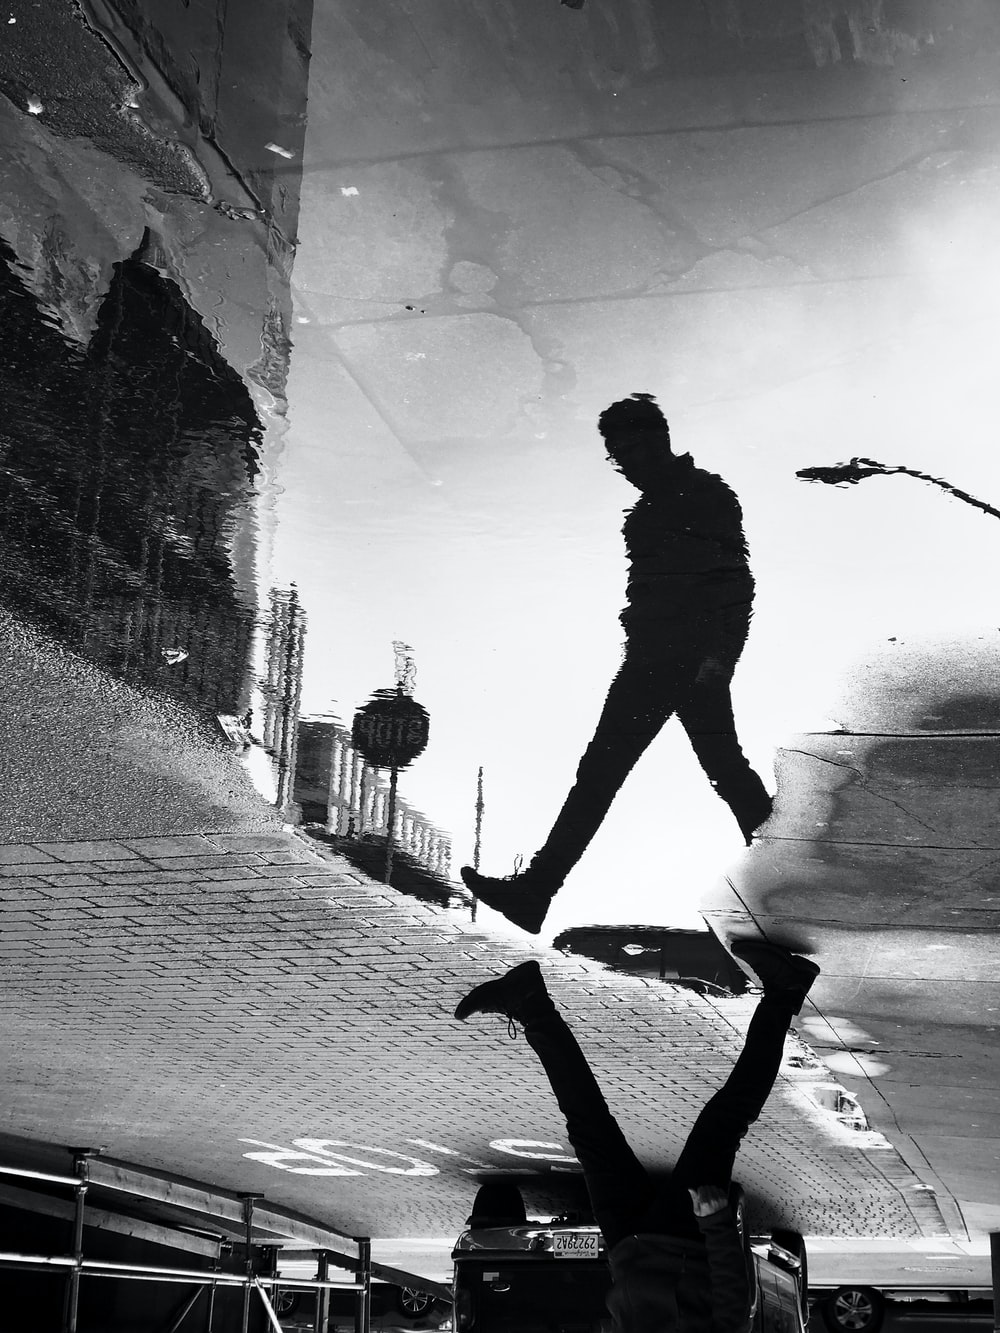 water reflection shadow of man walking on street in grayscale photography